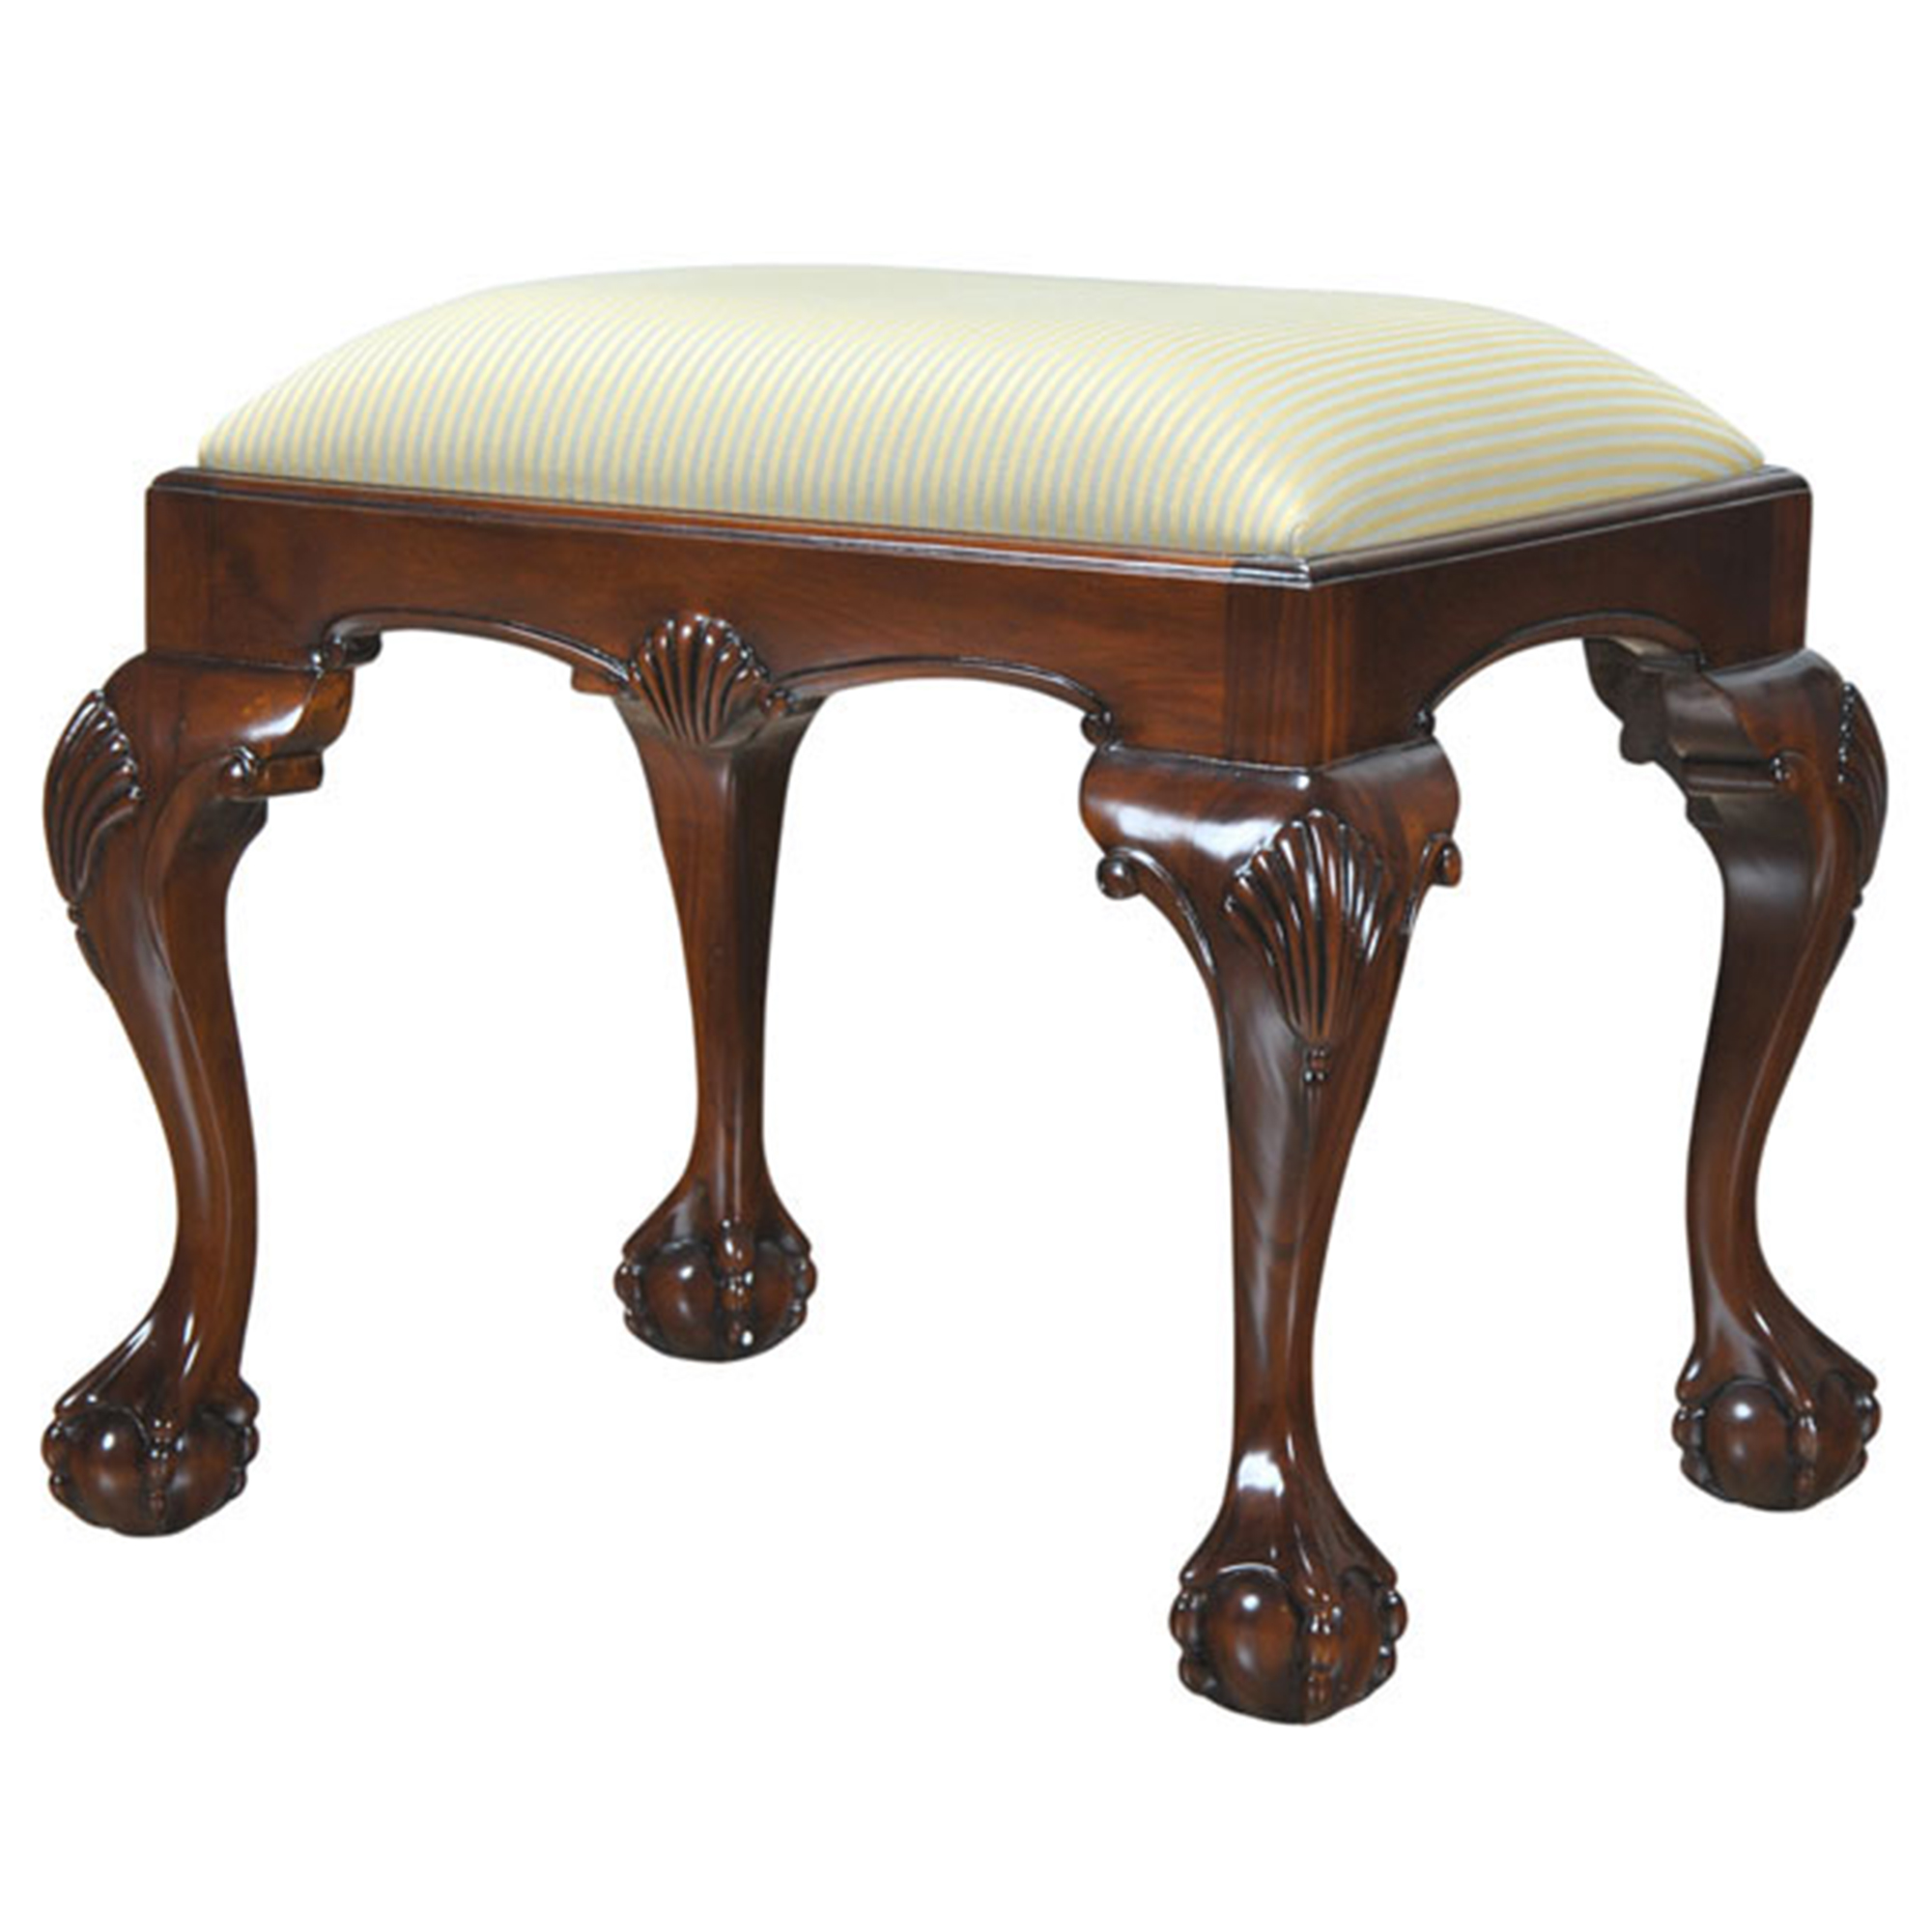 Small Chippendale Bench Niagara Furniture Solid Mahogany Bench